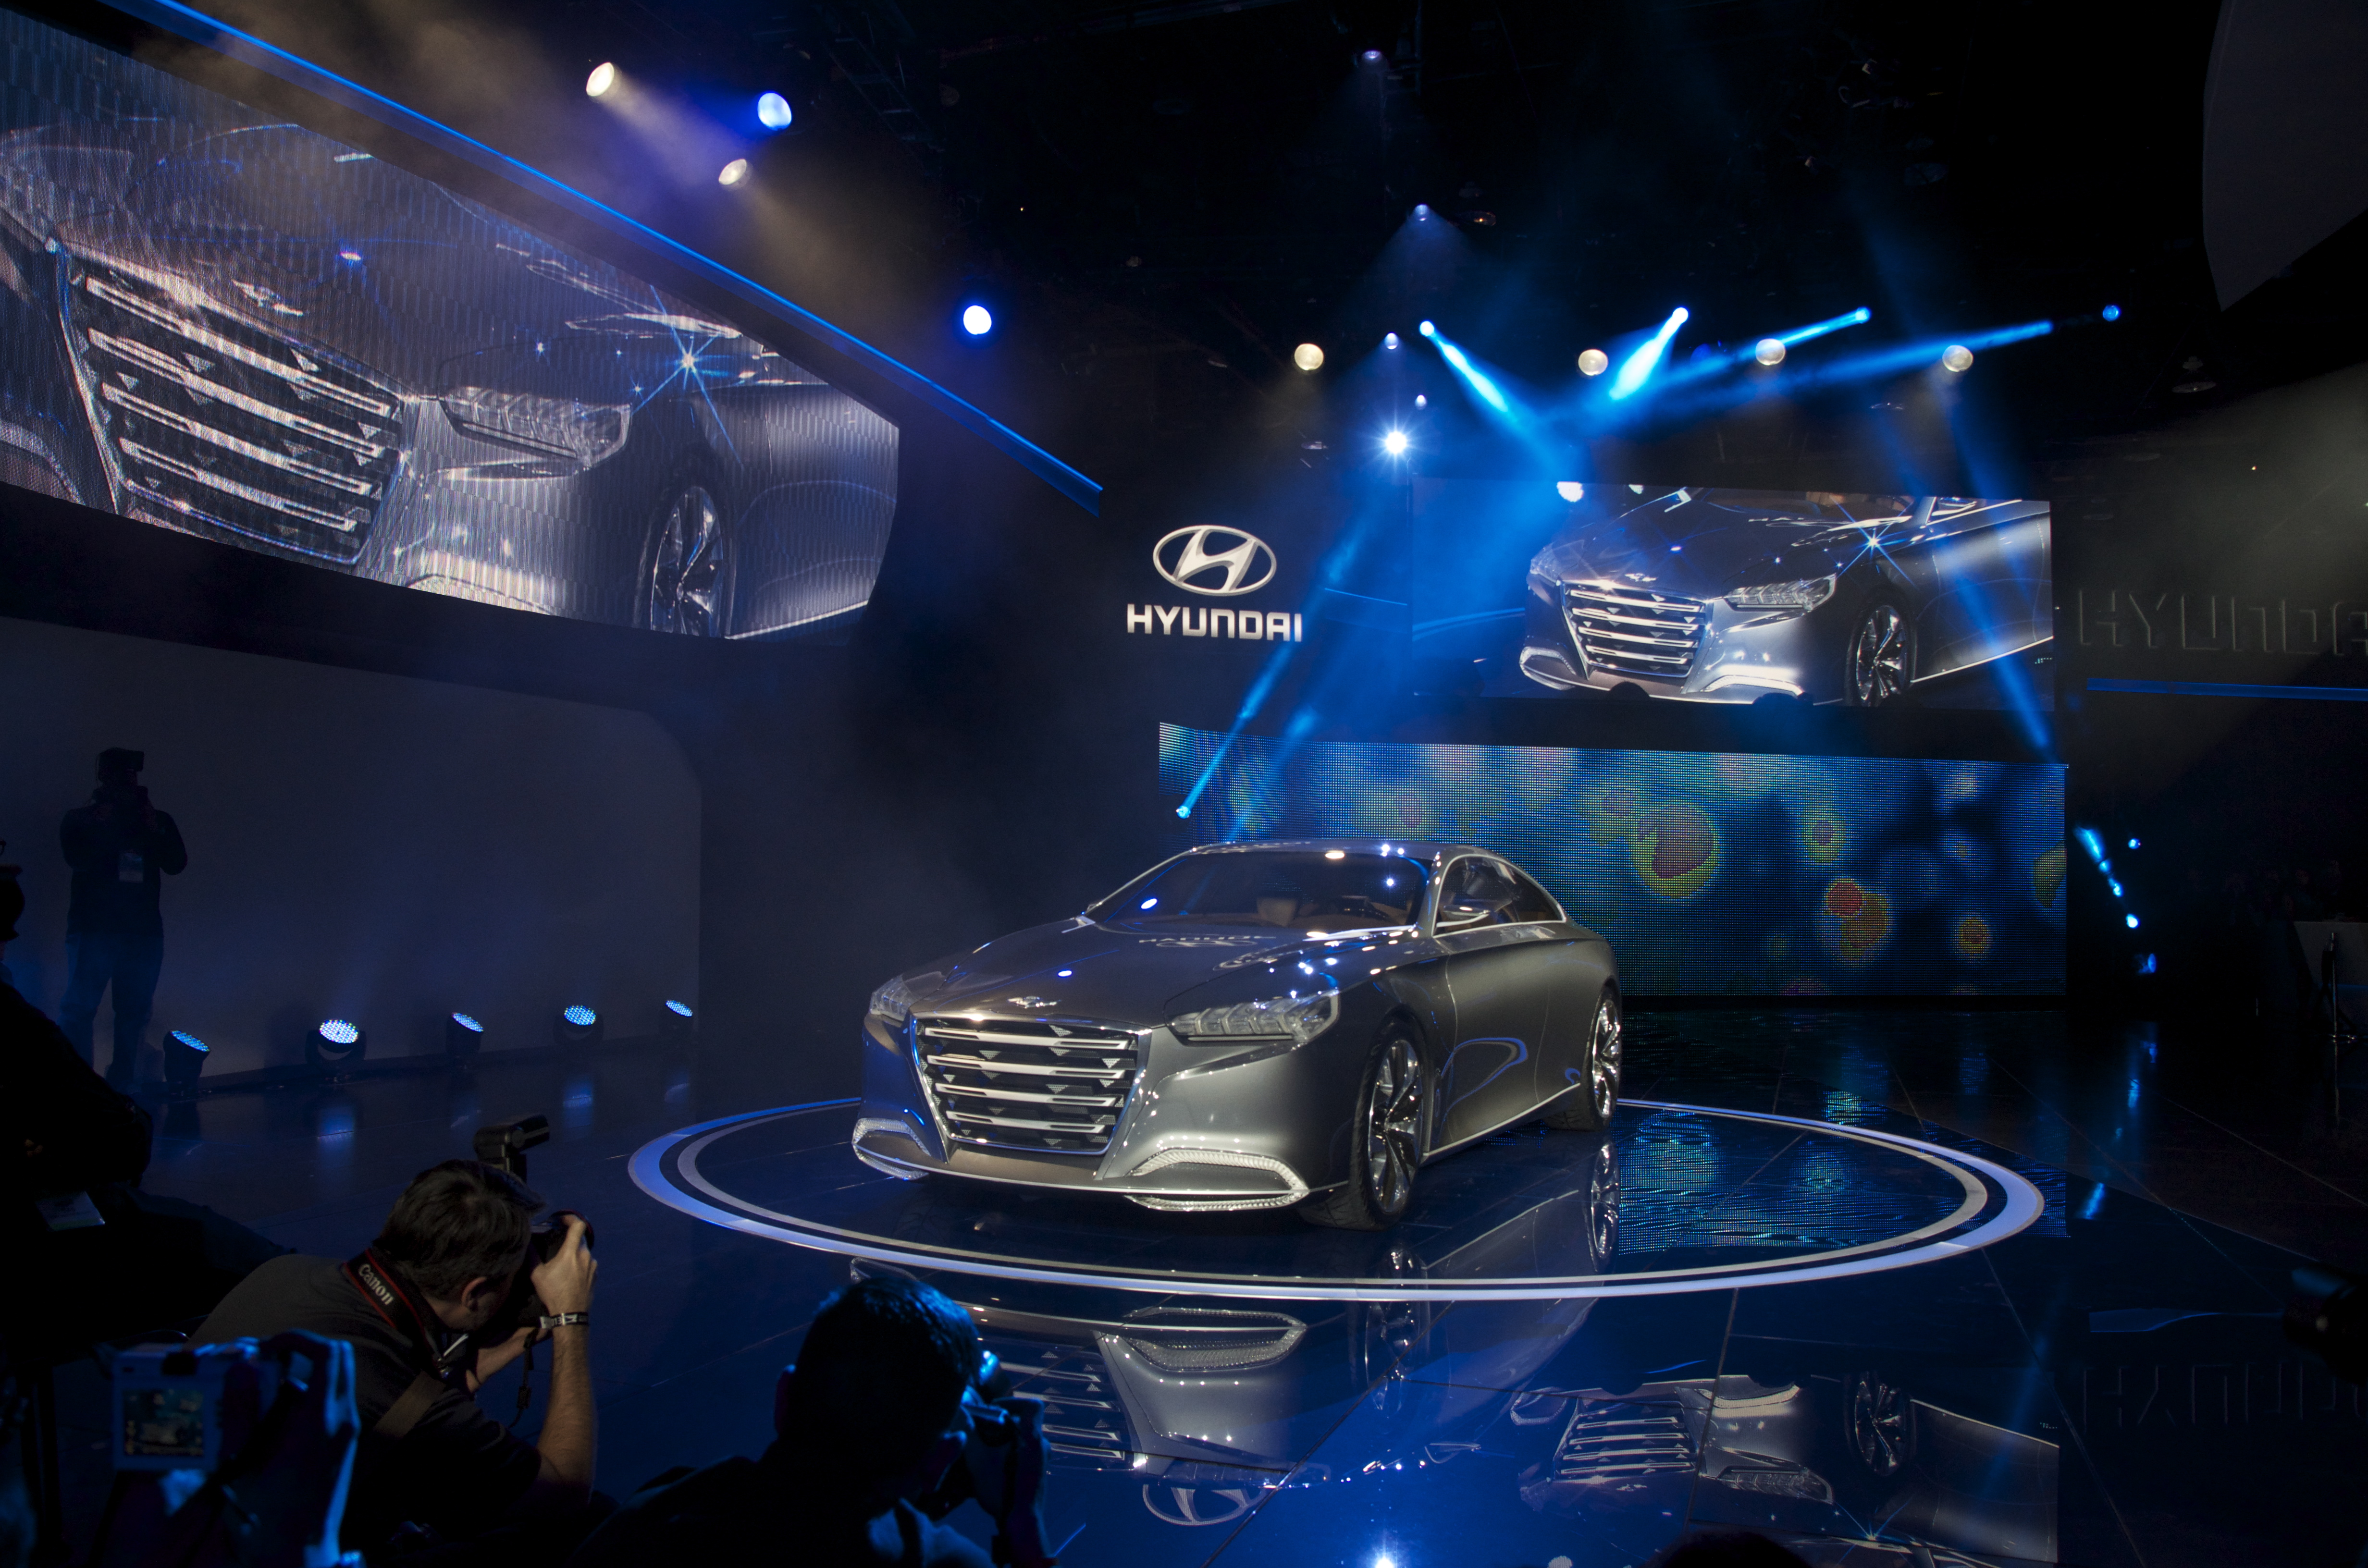 Detroit Auto Show Hyundai Unveils New Luxury Car HCD Genesis - Hyundai car show